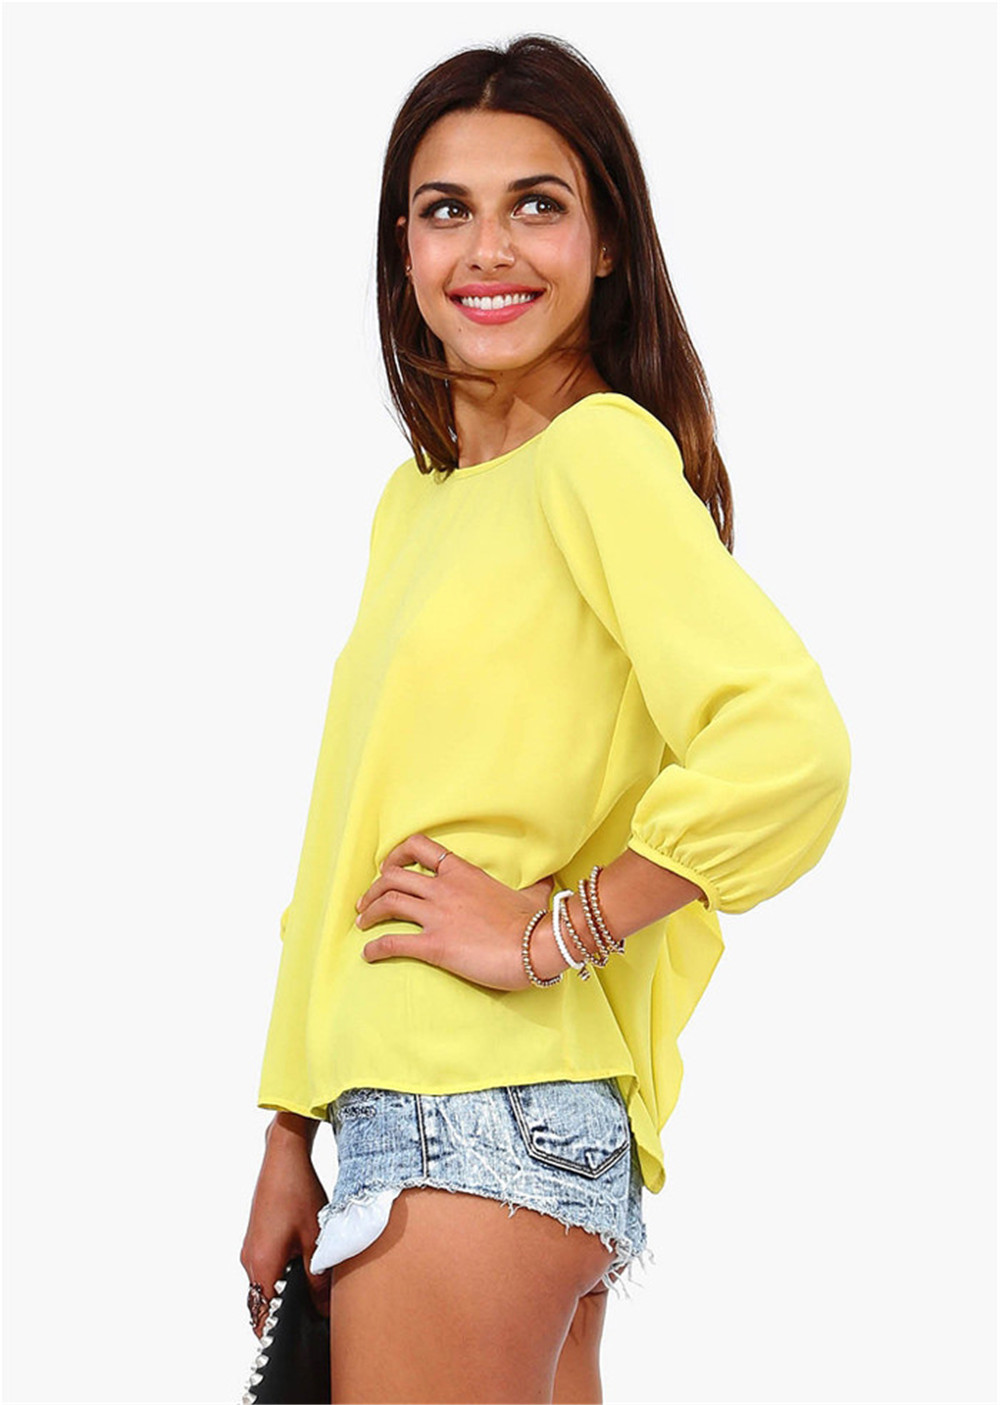 May 11, · thrushop-9b4y6tny.ga Miranda - Yellow Tops 98x x thrushop-9b4y6tny.ga Miranda - Yellow Tops 98x x My threads just the things that I love about the girls. A Sloppy Face is a Happy Face. The Magic of Gina Valentina The Magic of Riley Reid. The Magic of Megan Salinas The Magic of Chastity Lynn The Magic of MeganQT.